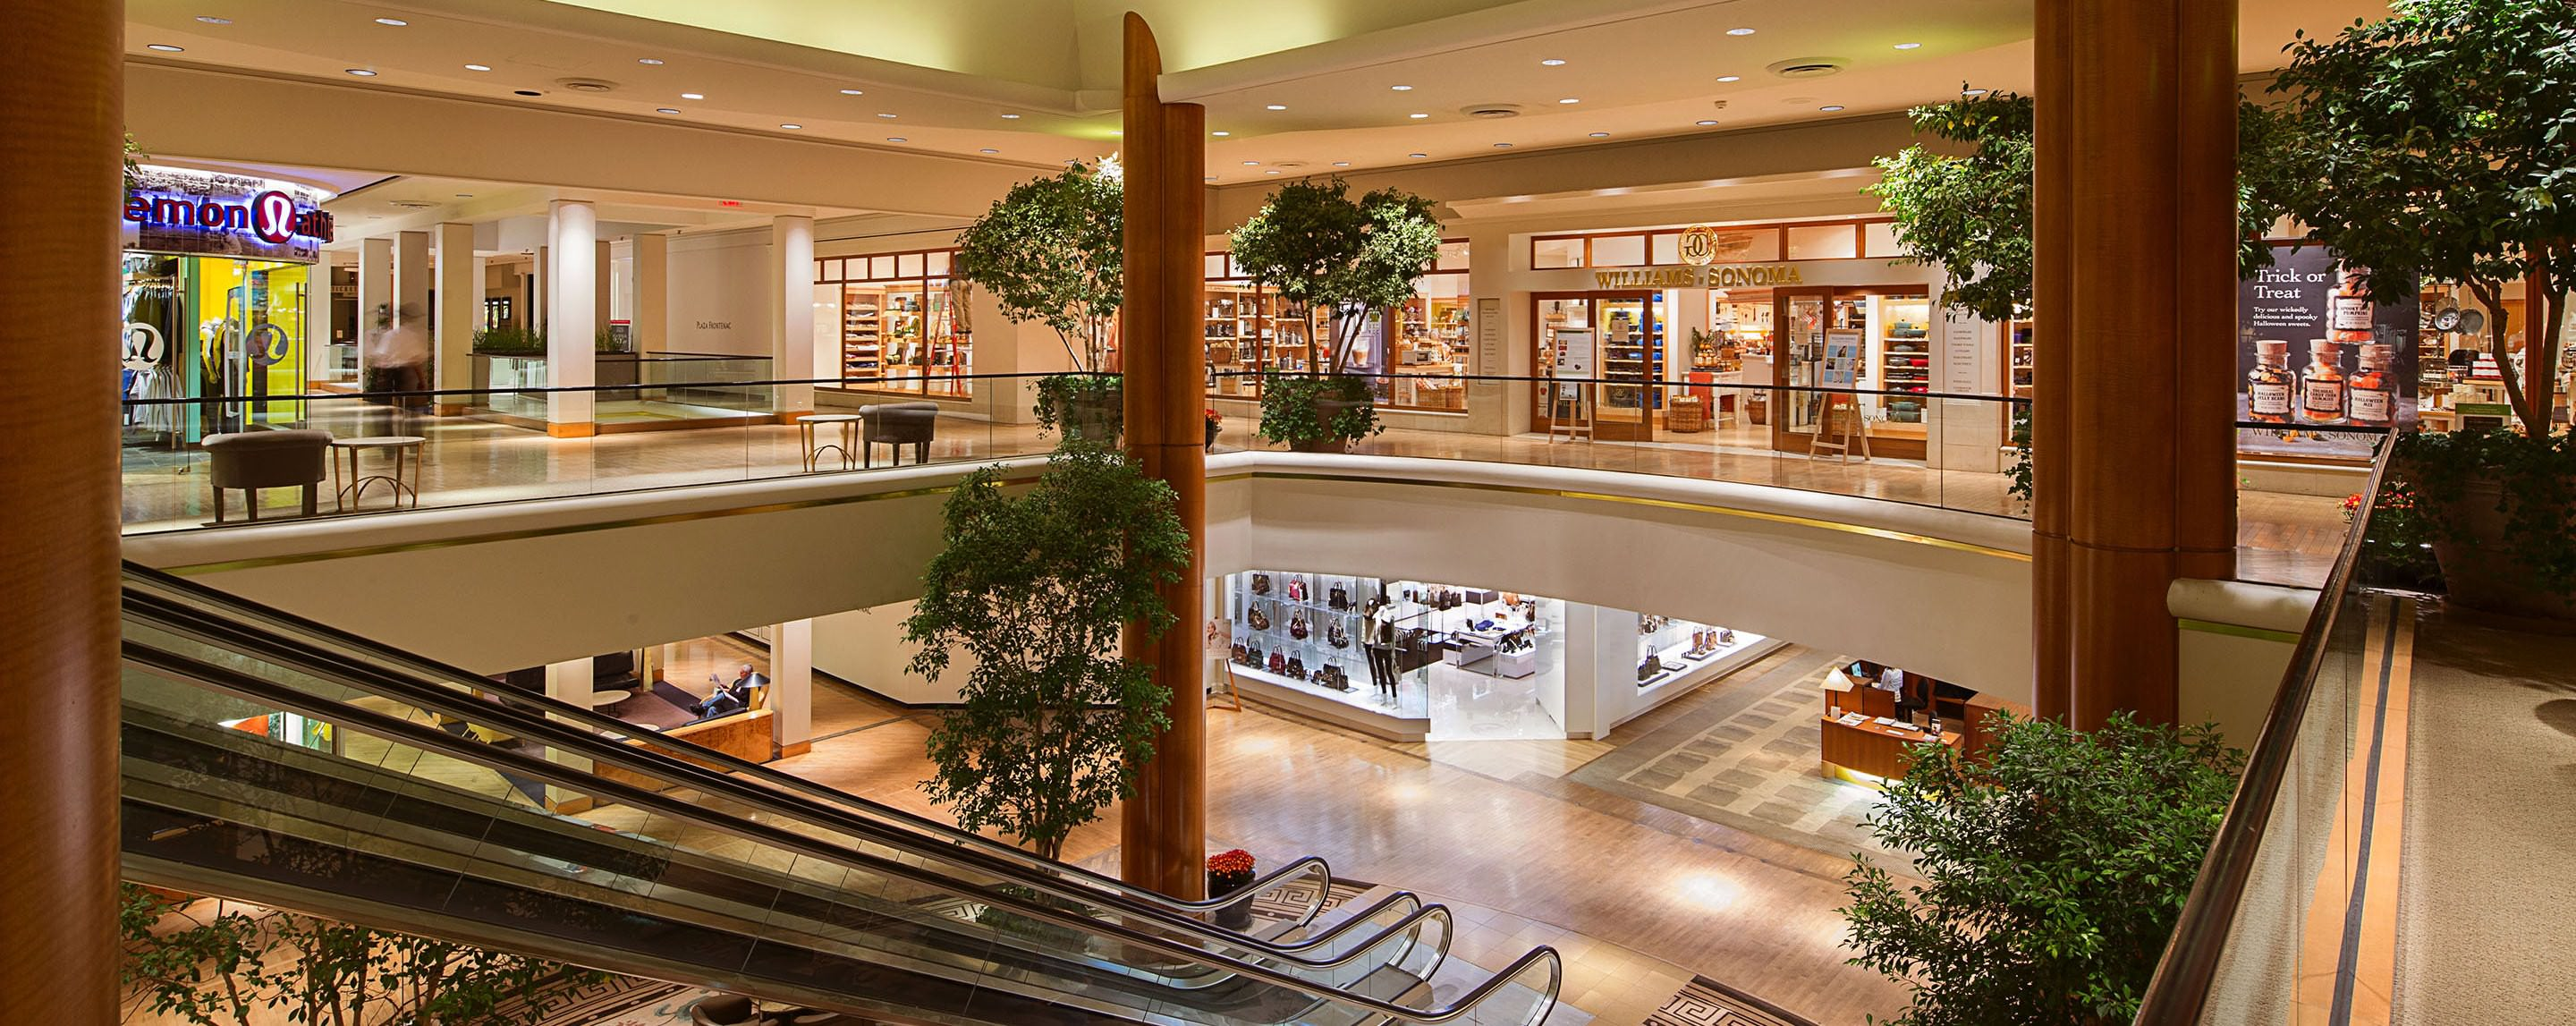 From the second level of Plaza Fontenac, you can see two levels of store fronts decorated with trees.